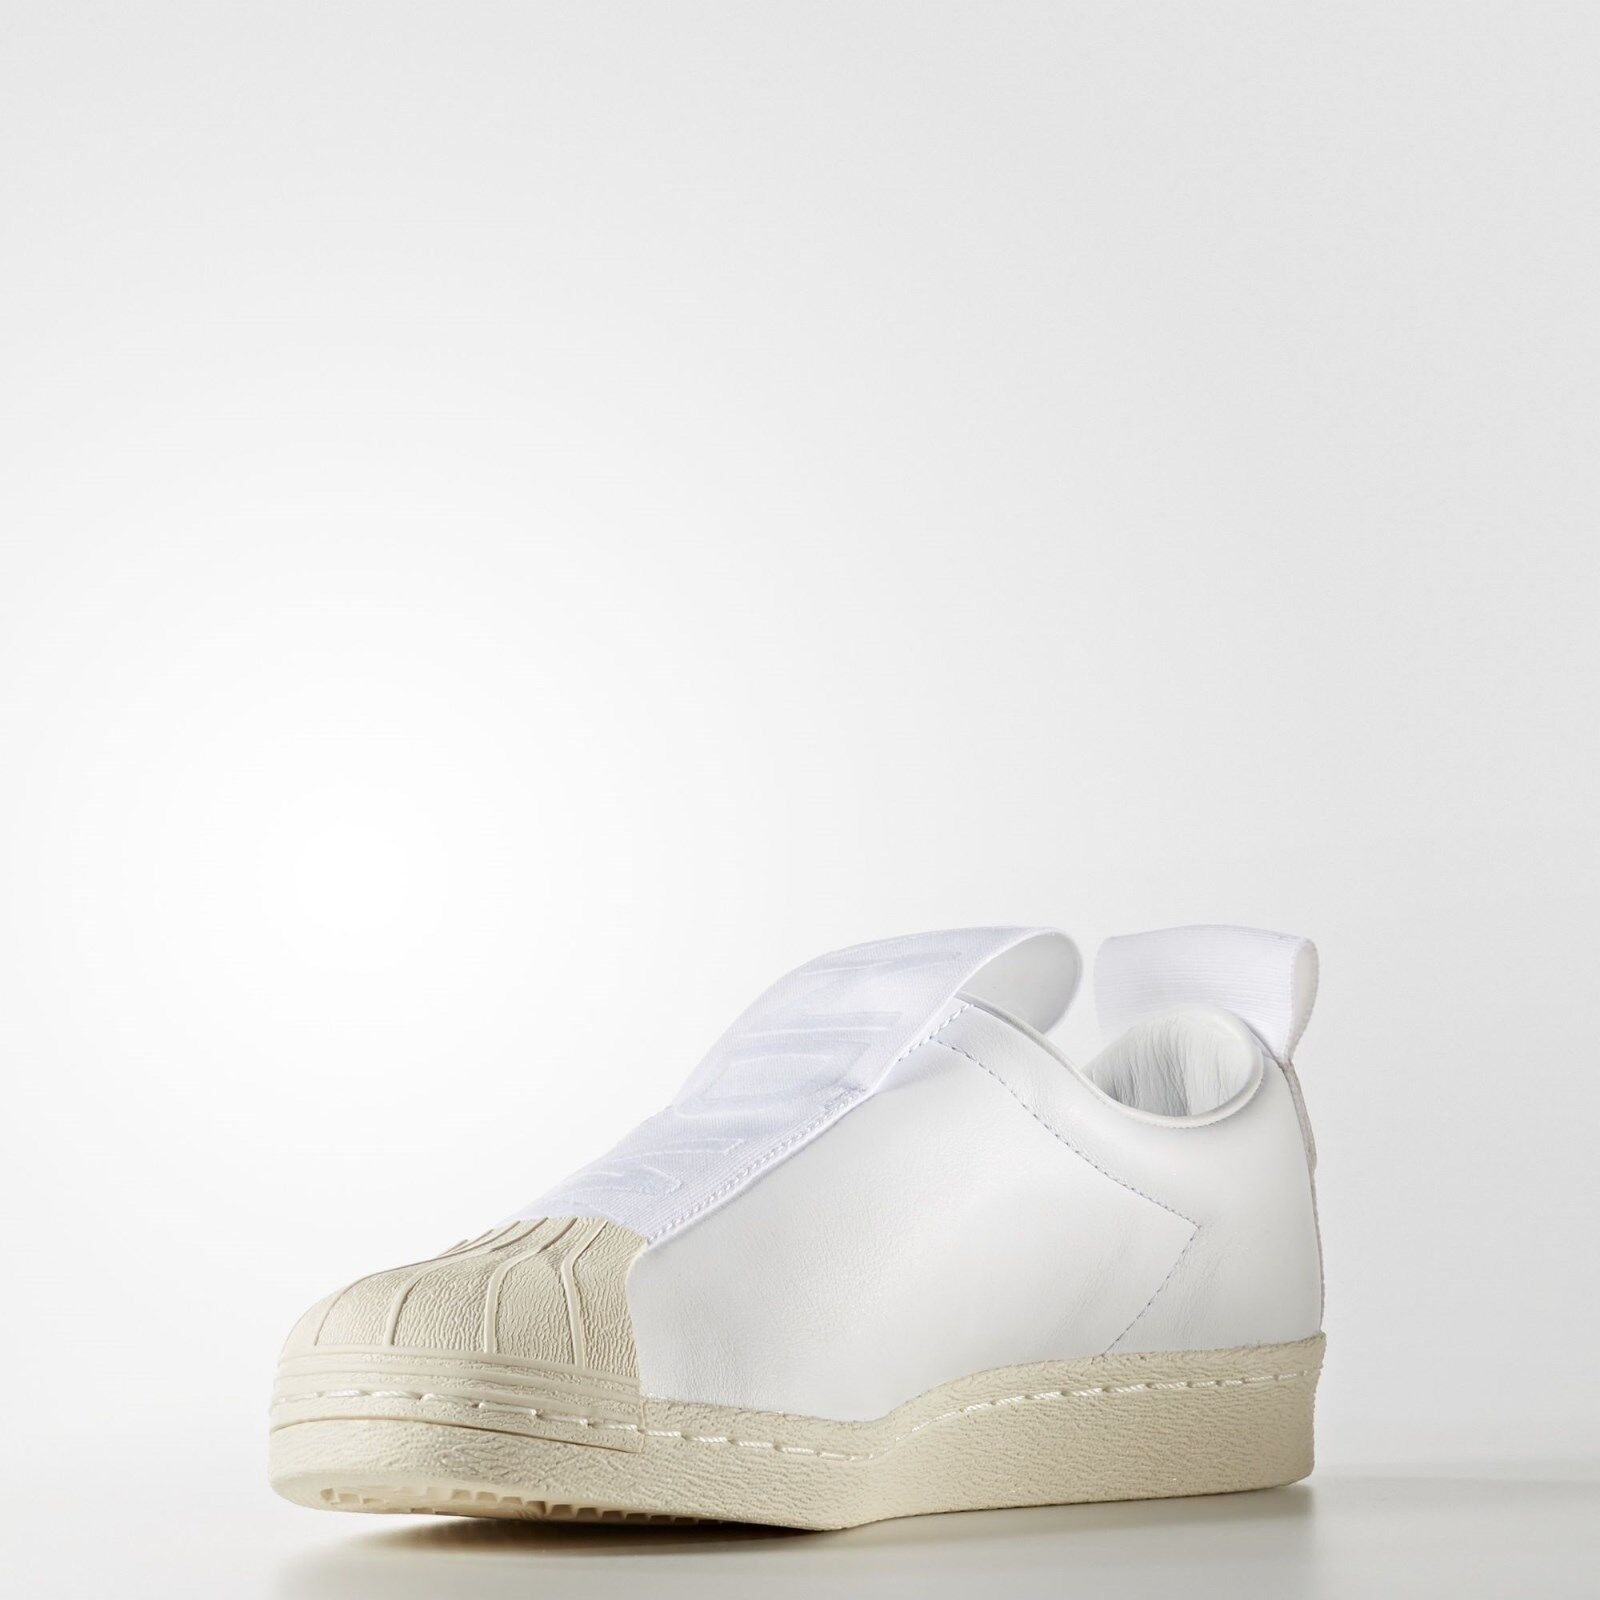 Adidas original Woherrar Superstar BW Slip-on skor Storlek 7 us BY9139